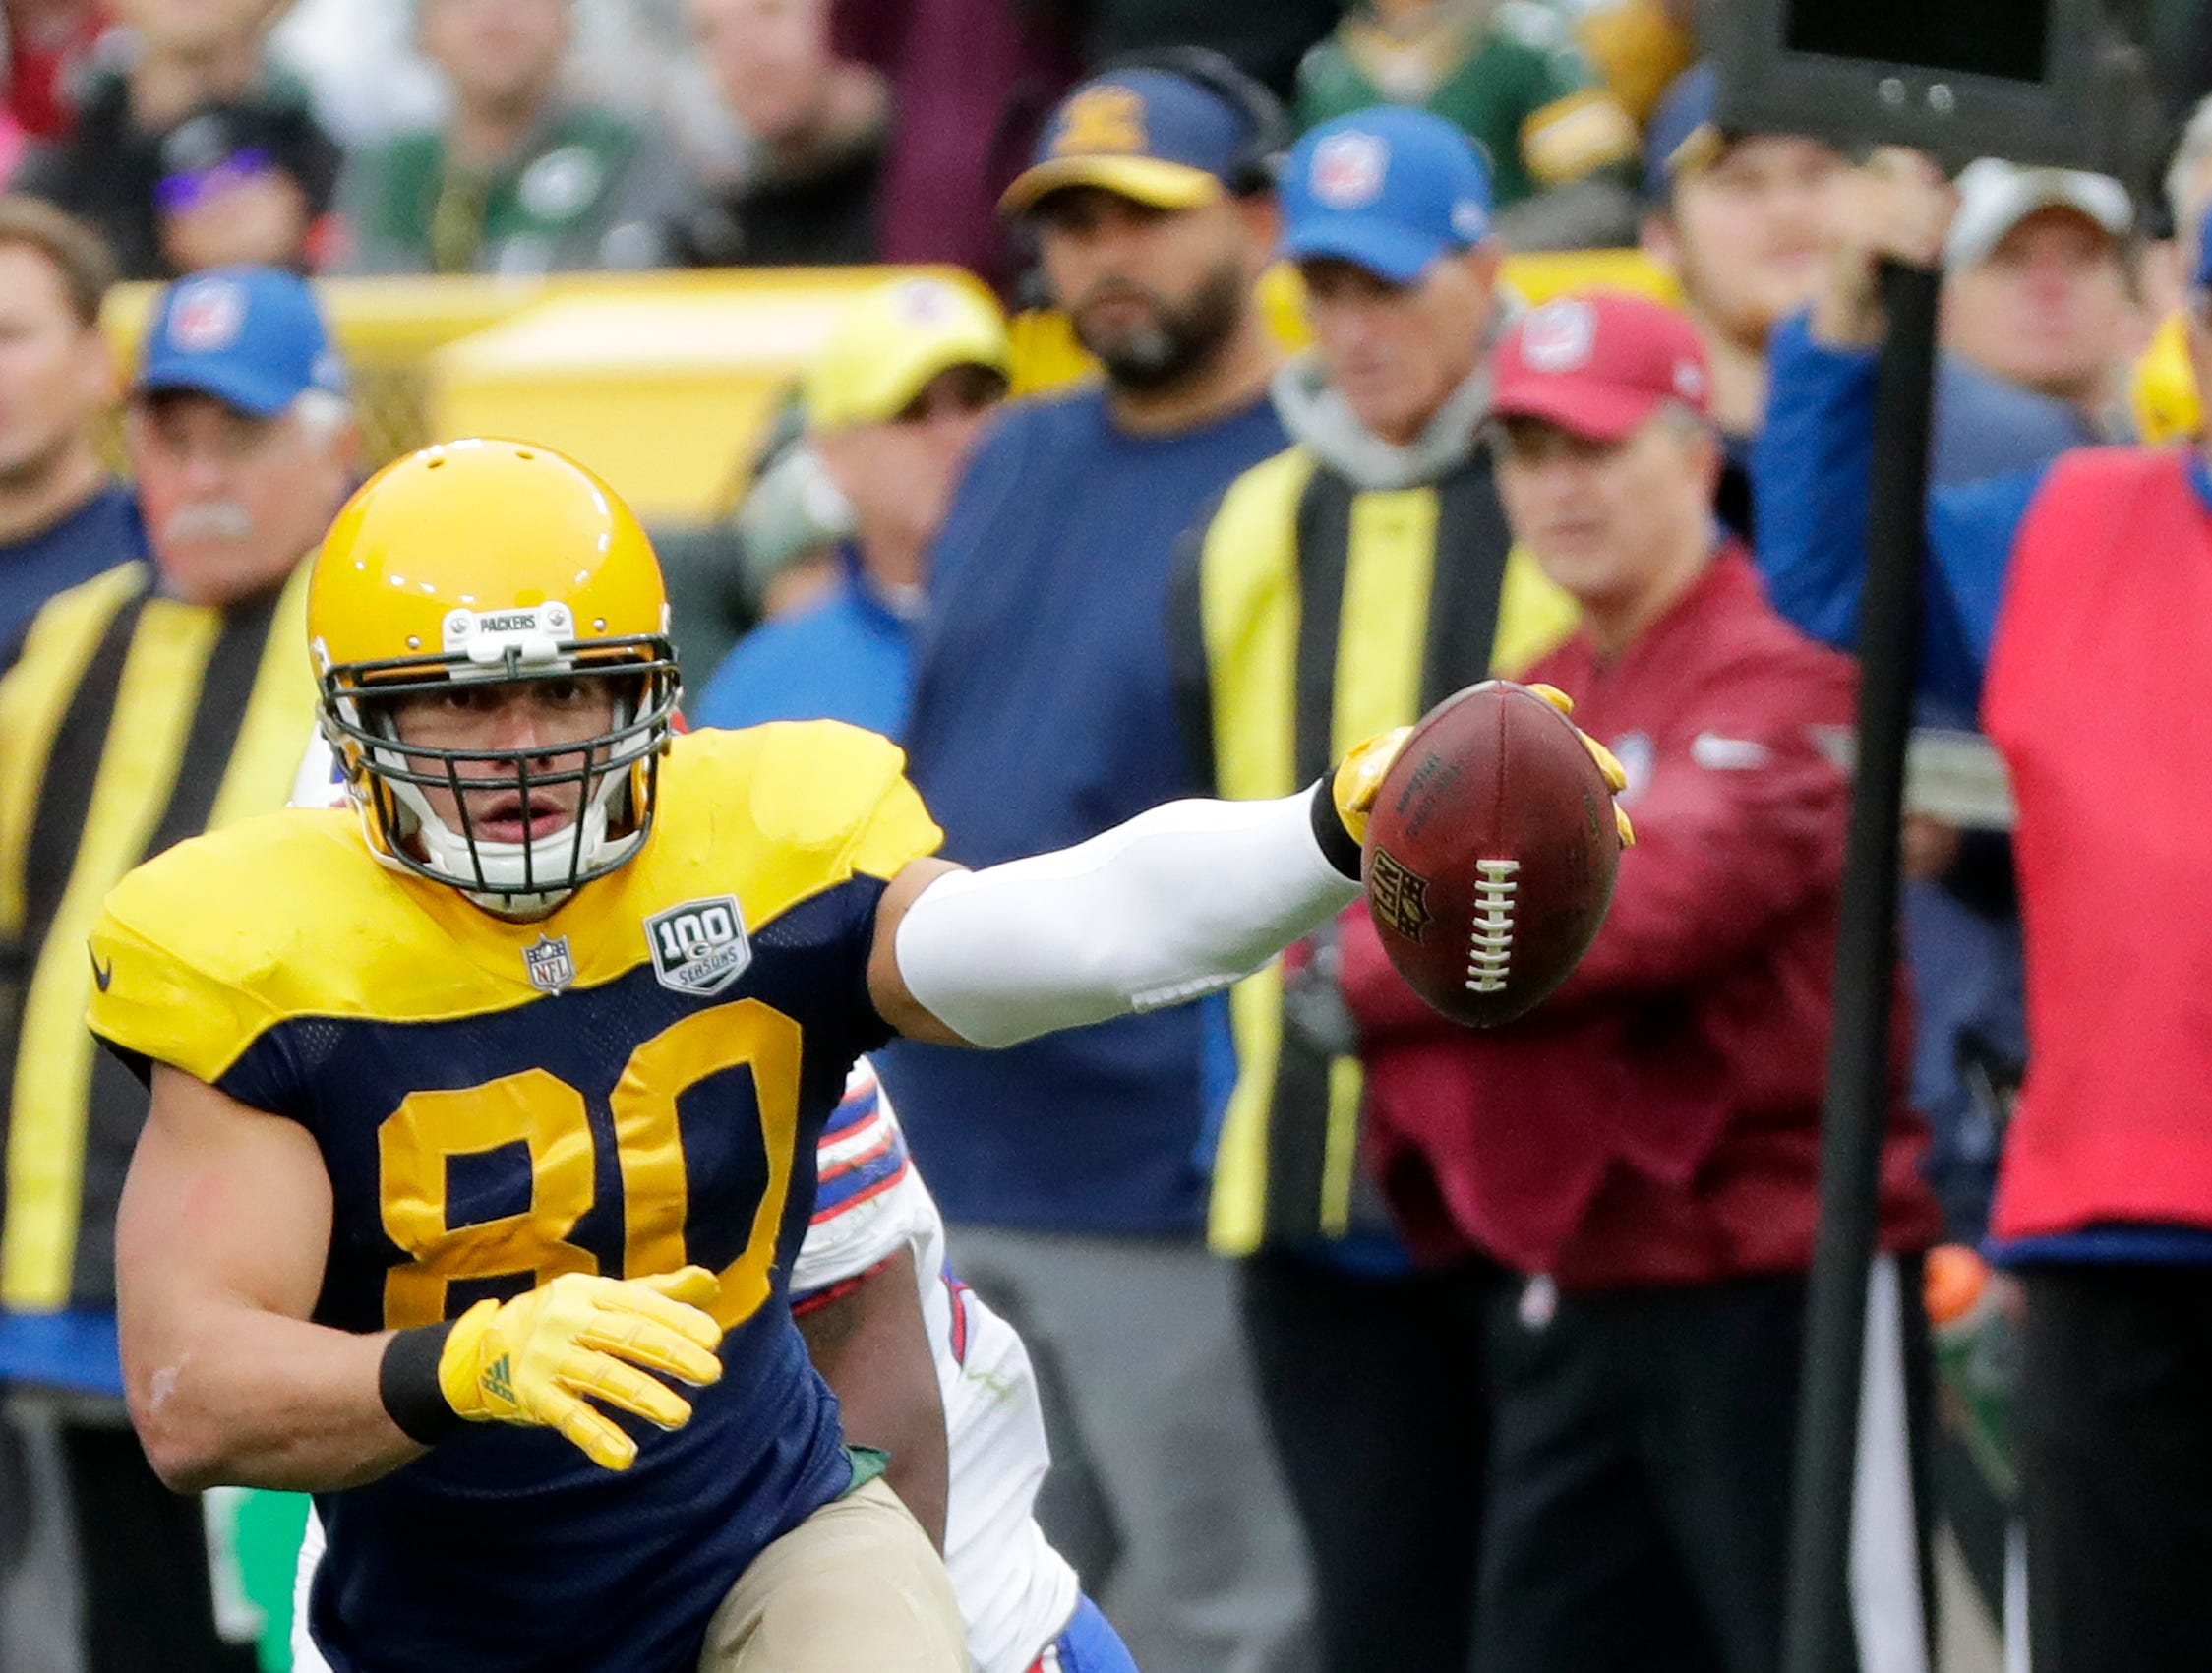 Green Bay Packers tight end Jimmy Graham (80) signals a first down after a catch against the Buffalo Bills in the fourth quarter at Lambeau Field on Sunday, September 30, 2018 in Green Bay, Wis.